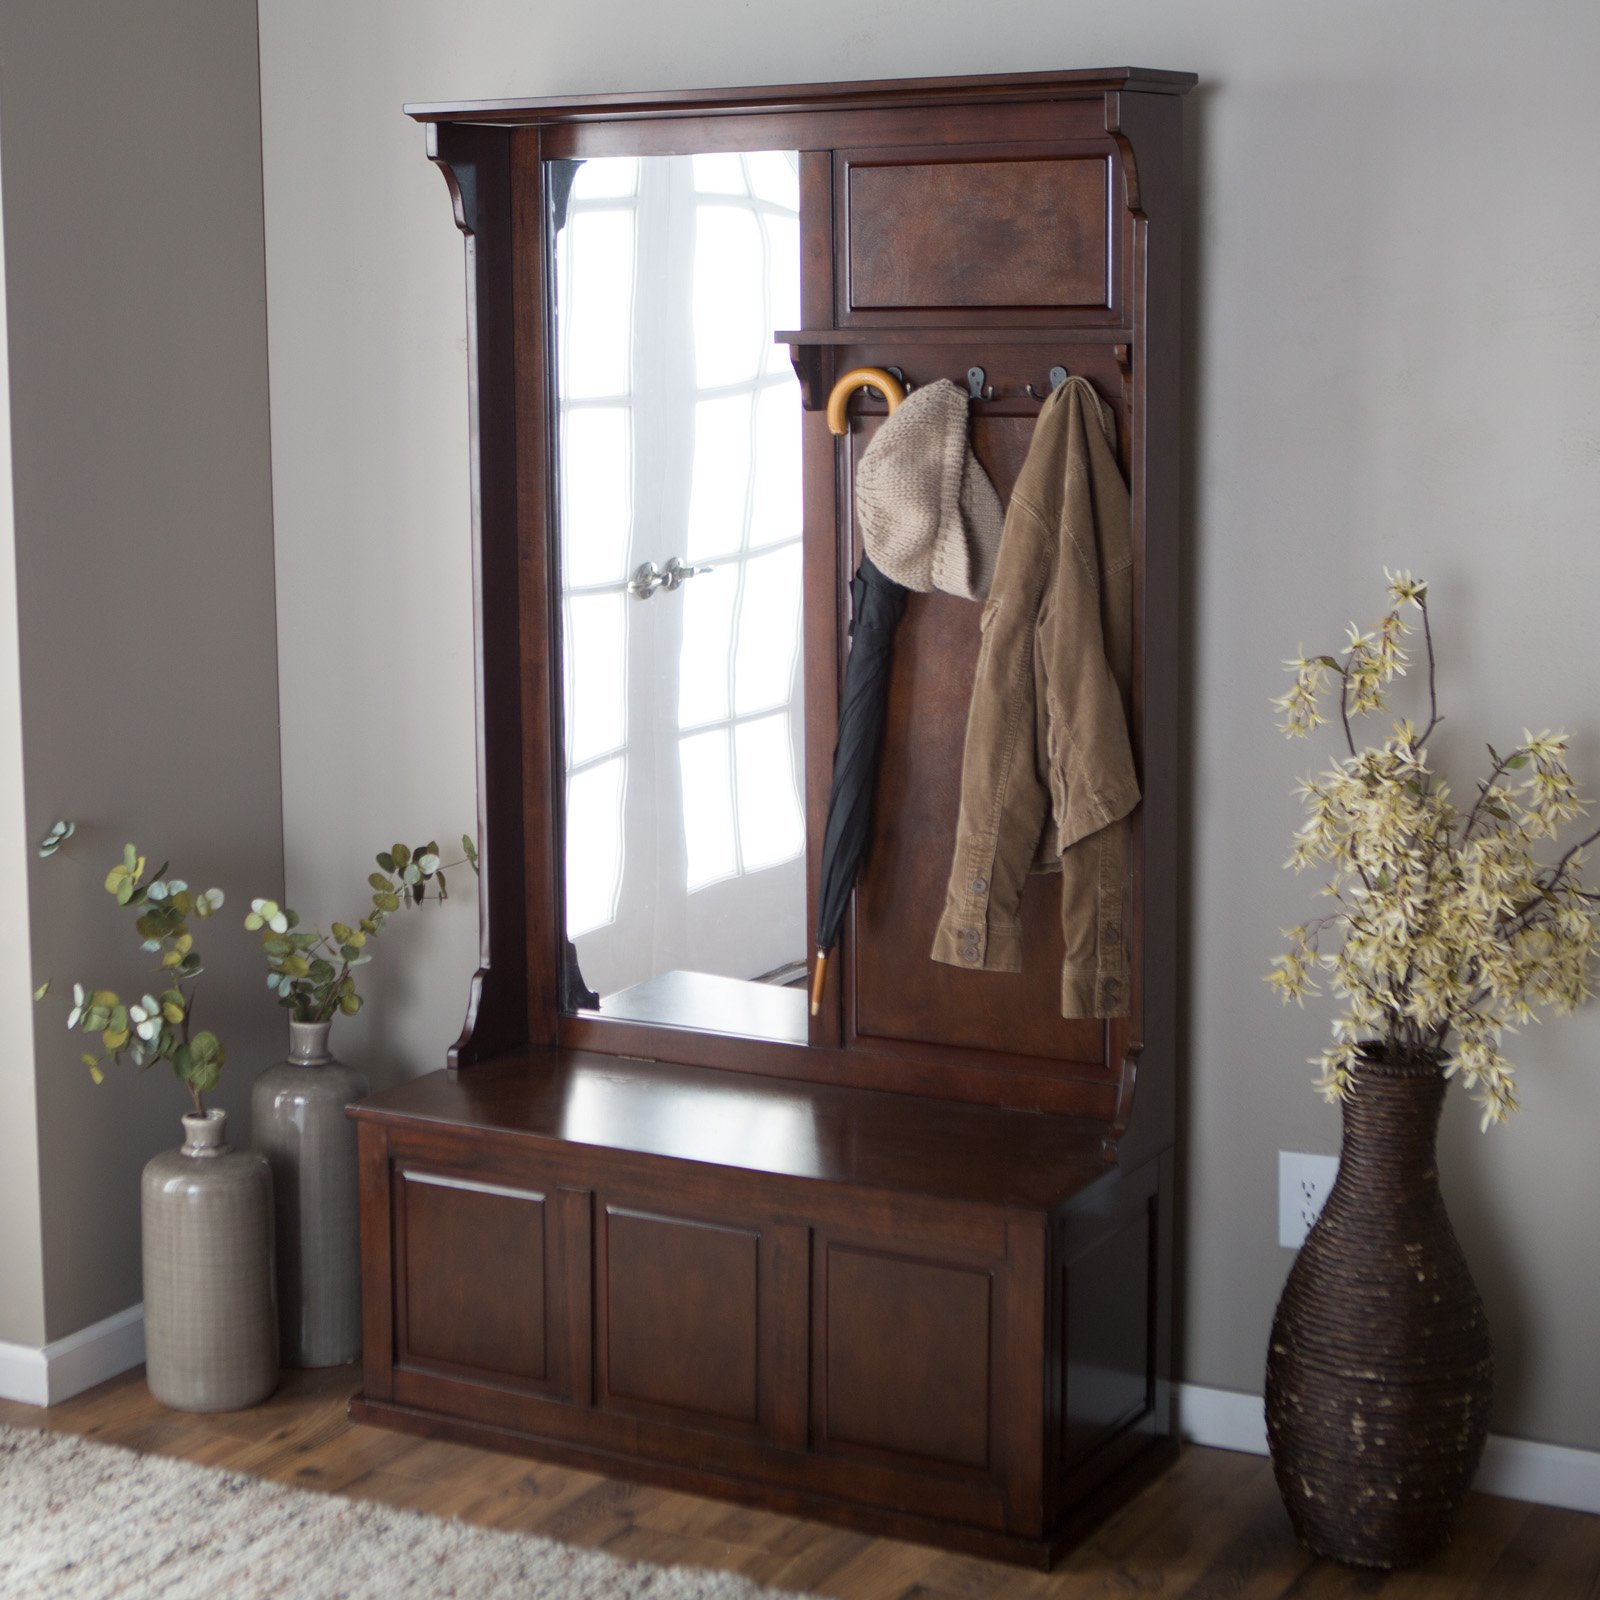 furniture-custom-small-organizer-entryway-corner-bench-with-dark-brown-wooden-entryway-bench-with-with-mirror-ideas-coat-rack-small-entryway-bench-with-brilliant-innovative-storage-and-without-sto